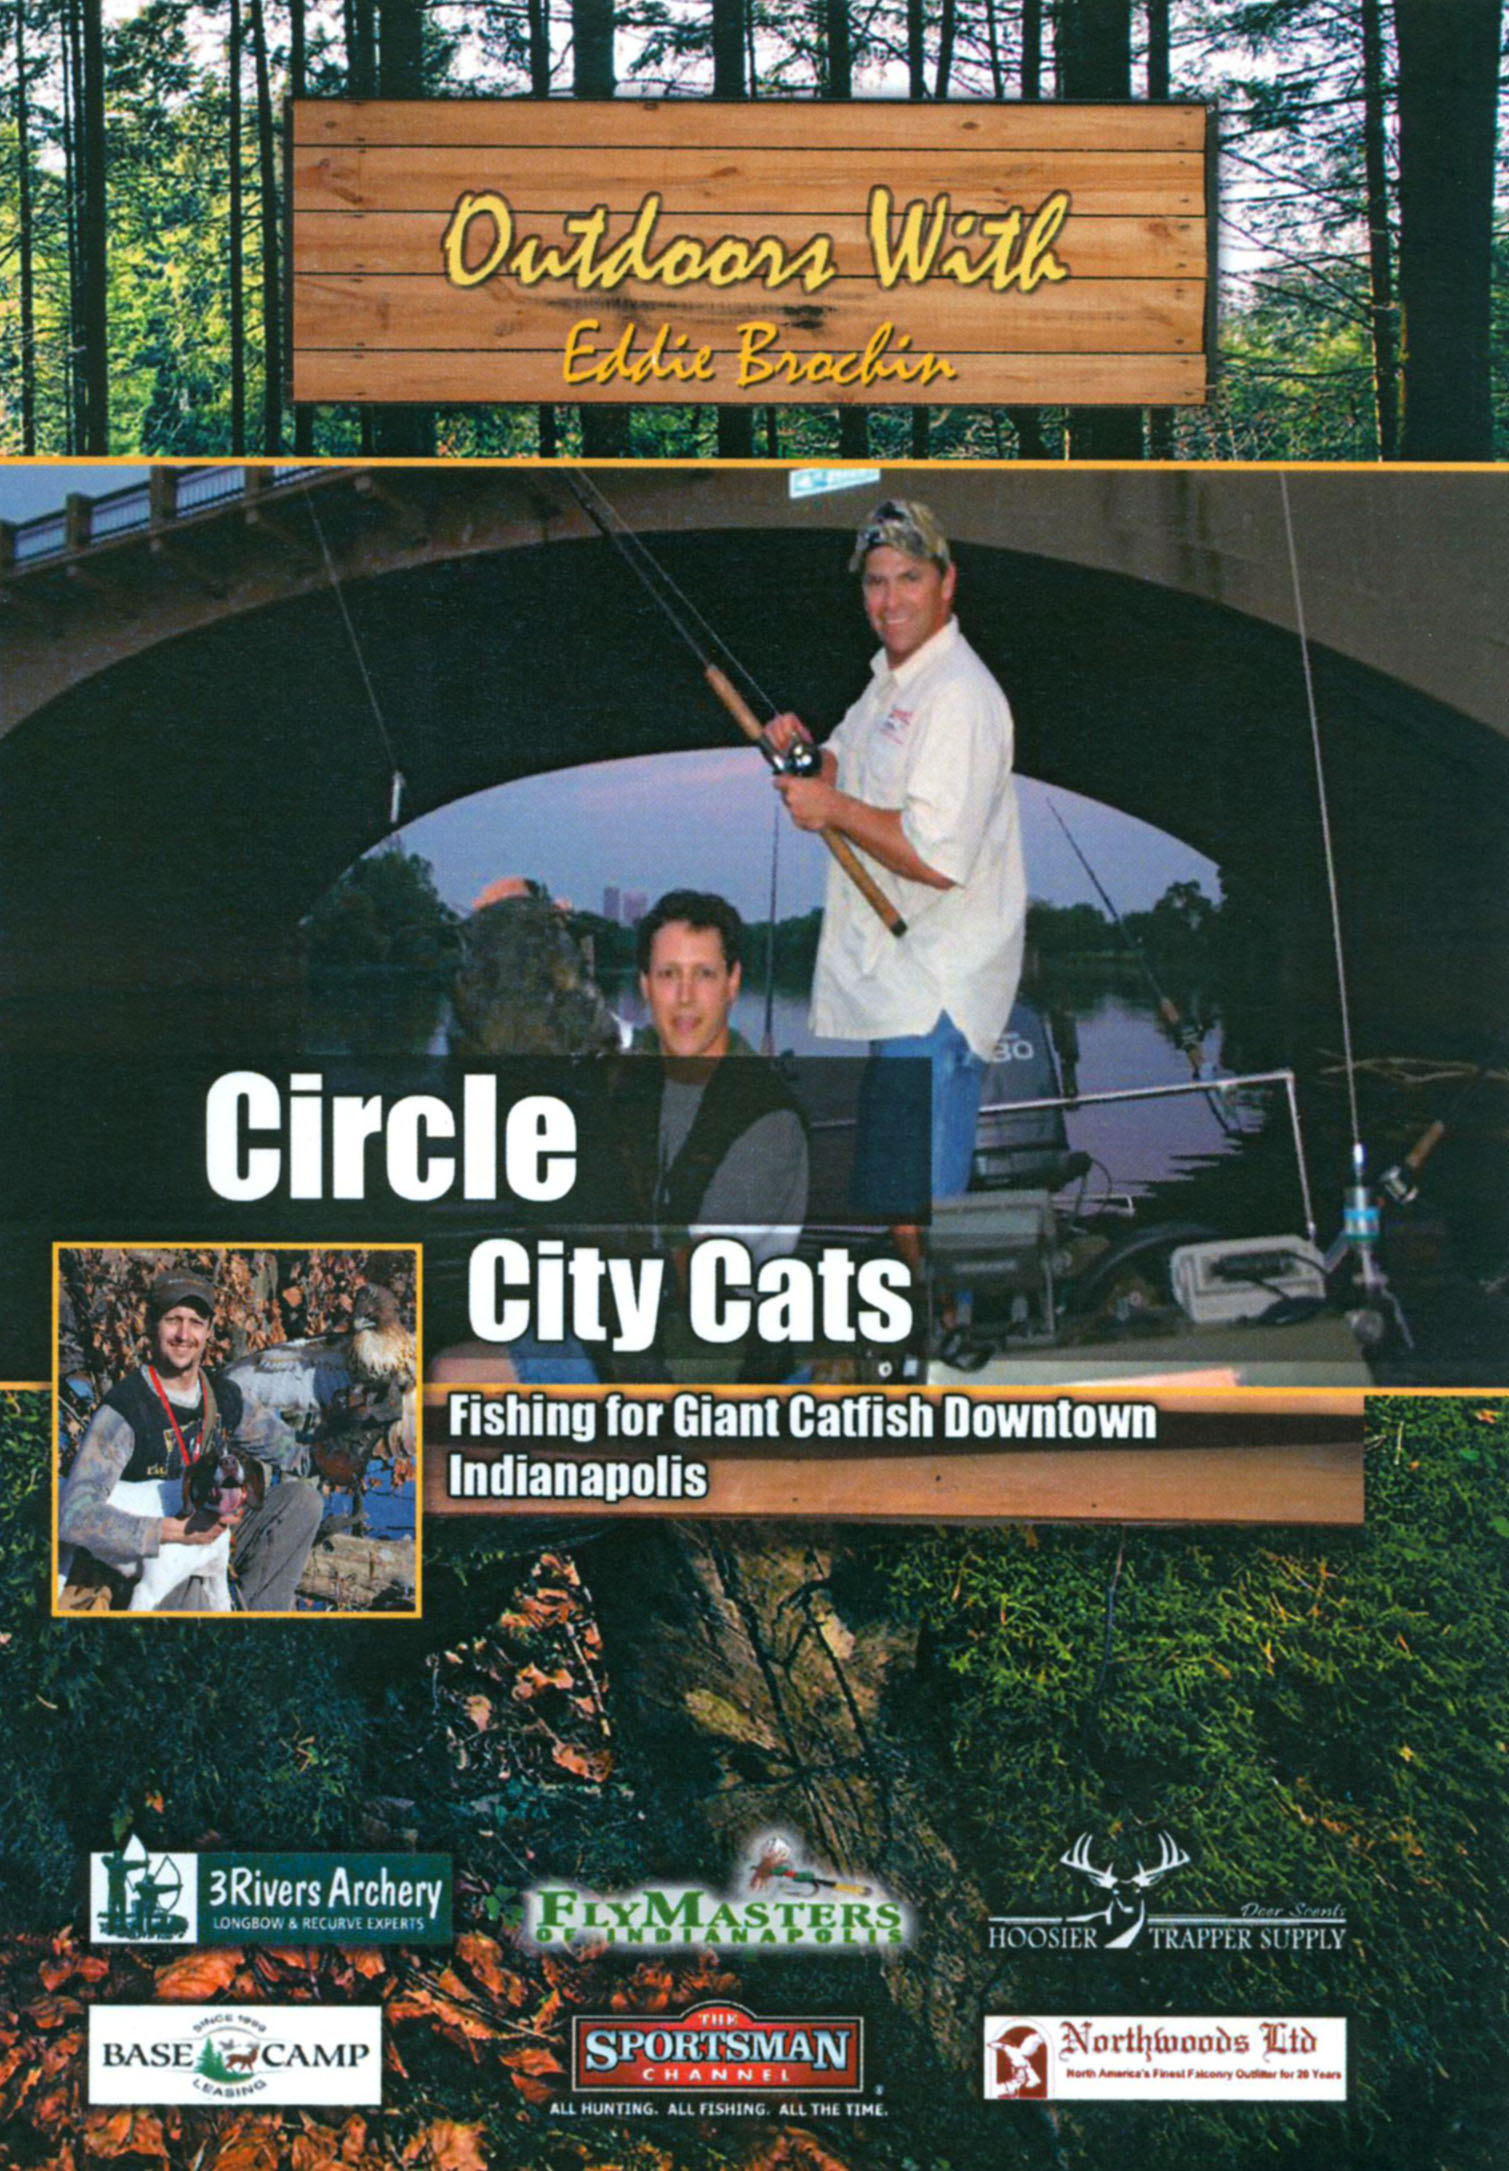 Outdoors With Eddie Brochin: Circle City Cats